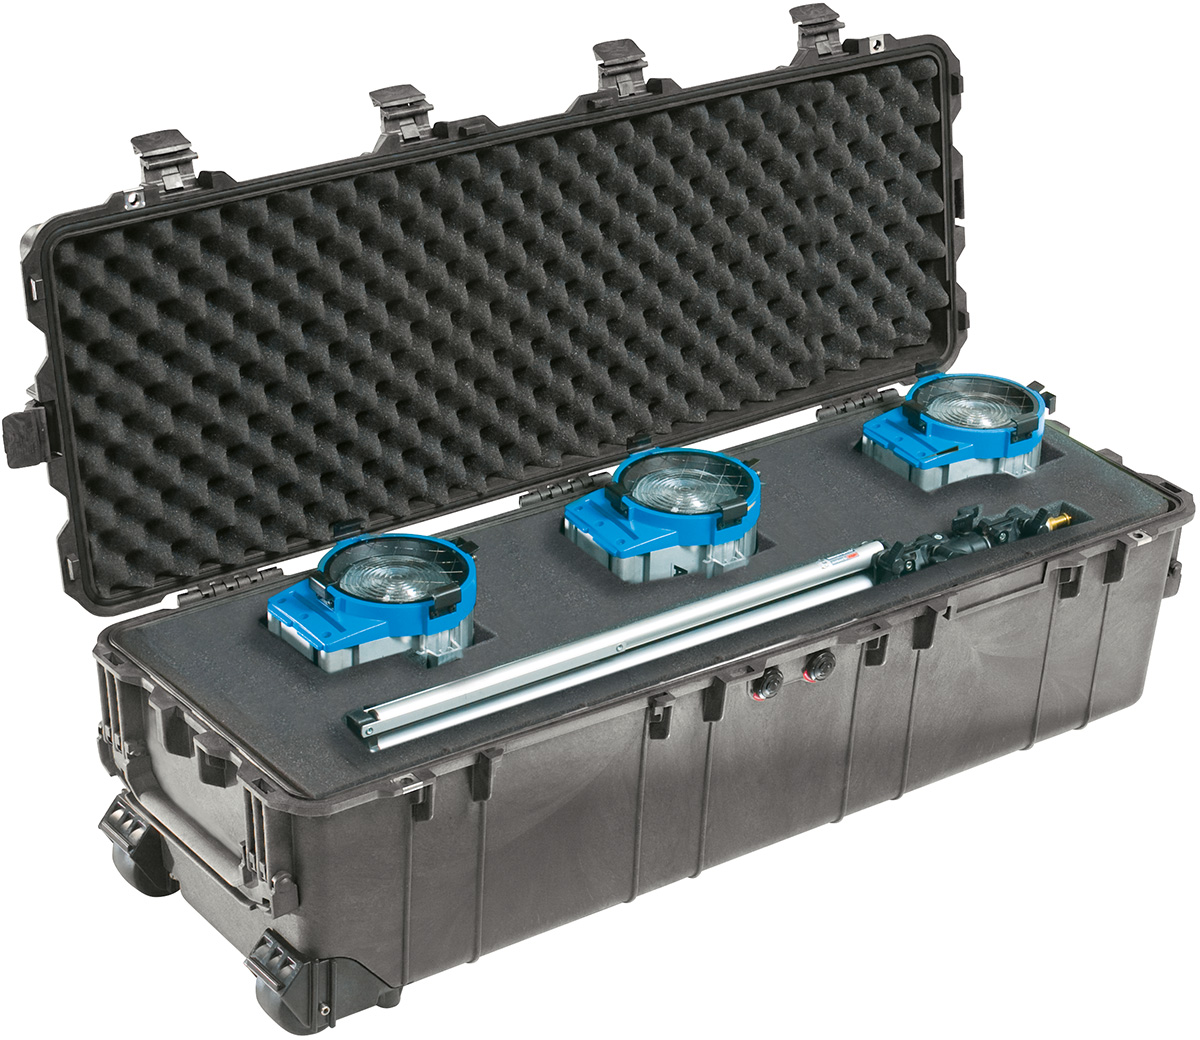 pelican peli products 1740 movie set video lighting gear case